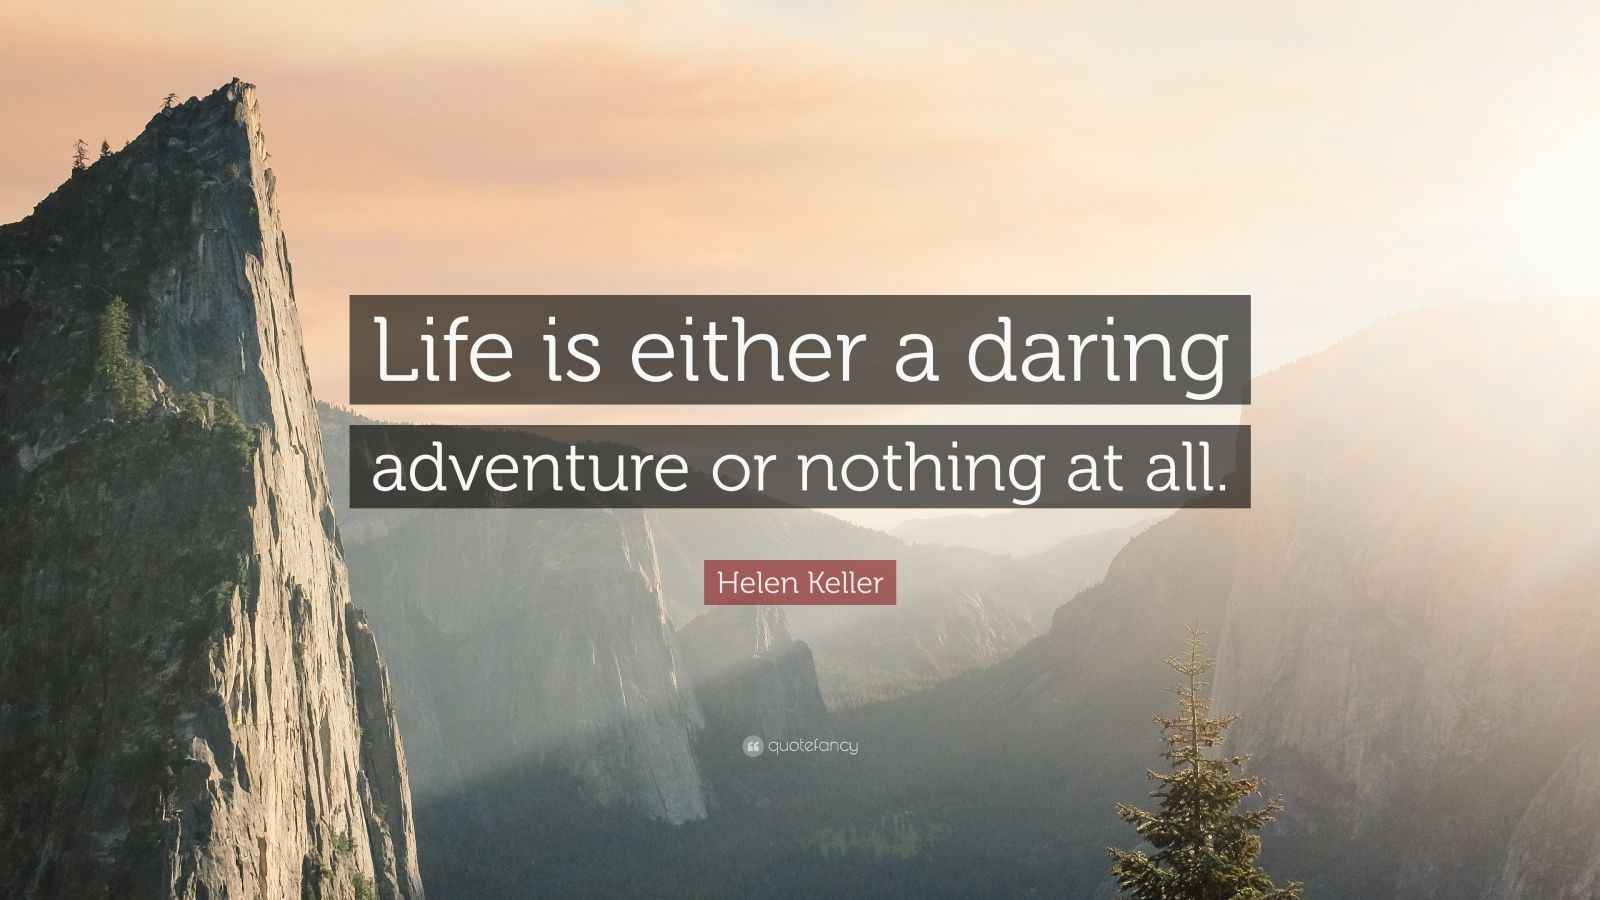 """an analysis of the quote life is either a daring adventure or nothing at all by helen keller Life is either a daring adventure or nothing""""  i'm with helen keller, security is  mostly a superstition, like stepping on a crack in the sidewalk to."""